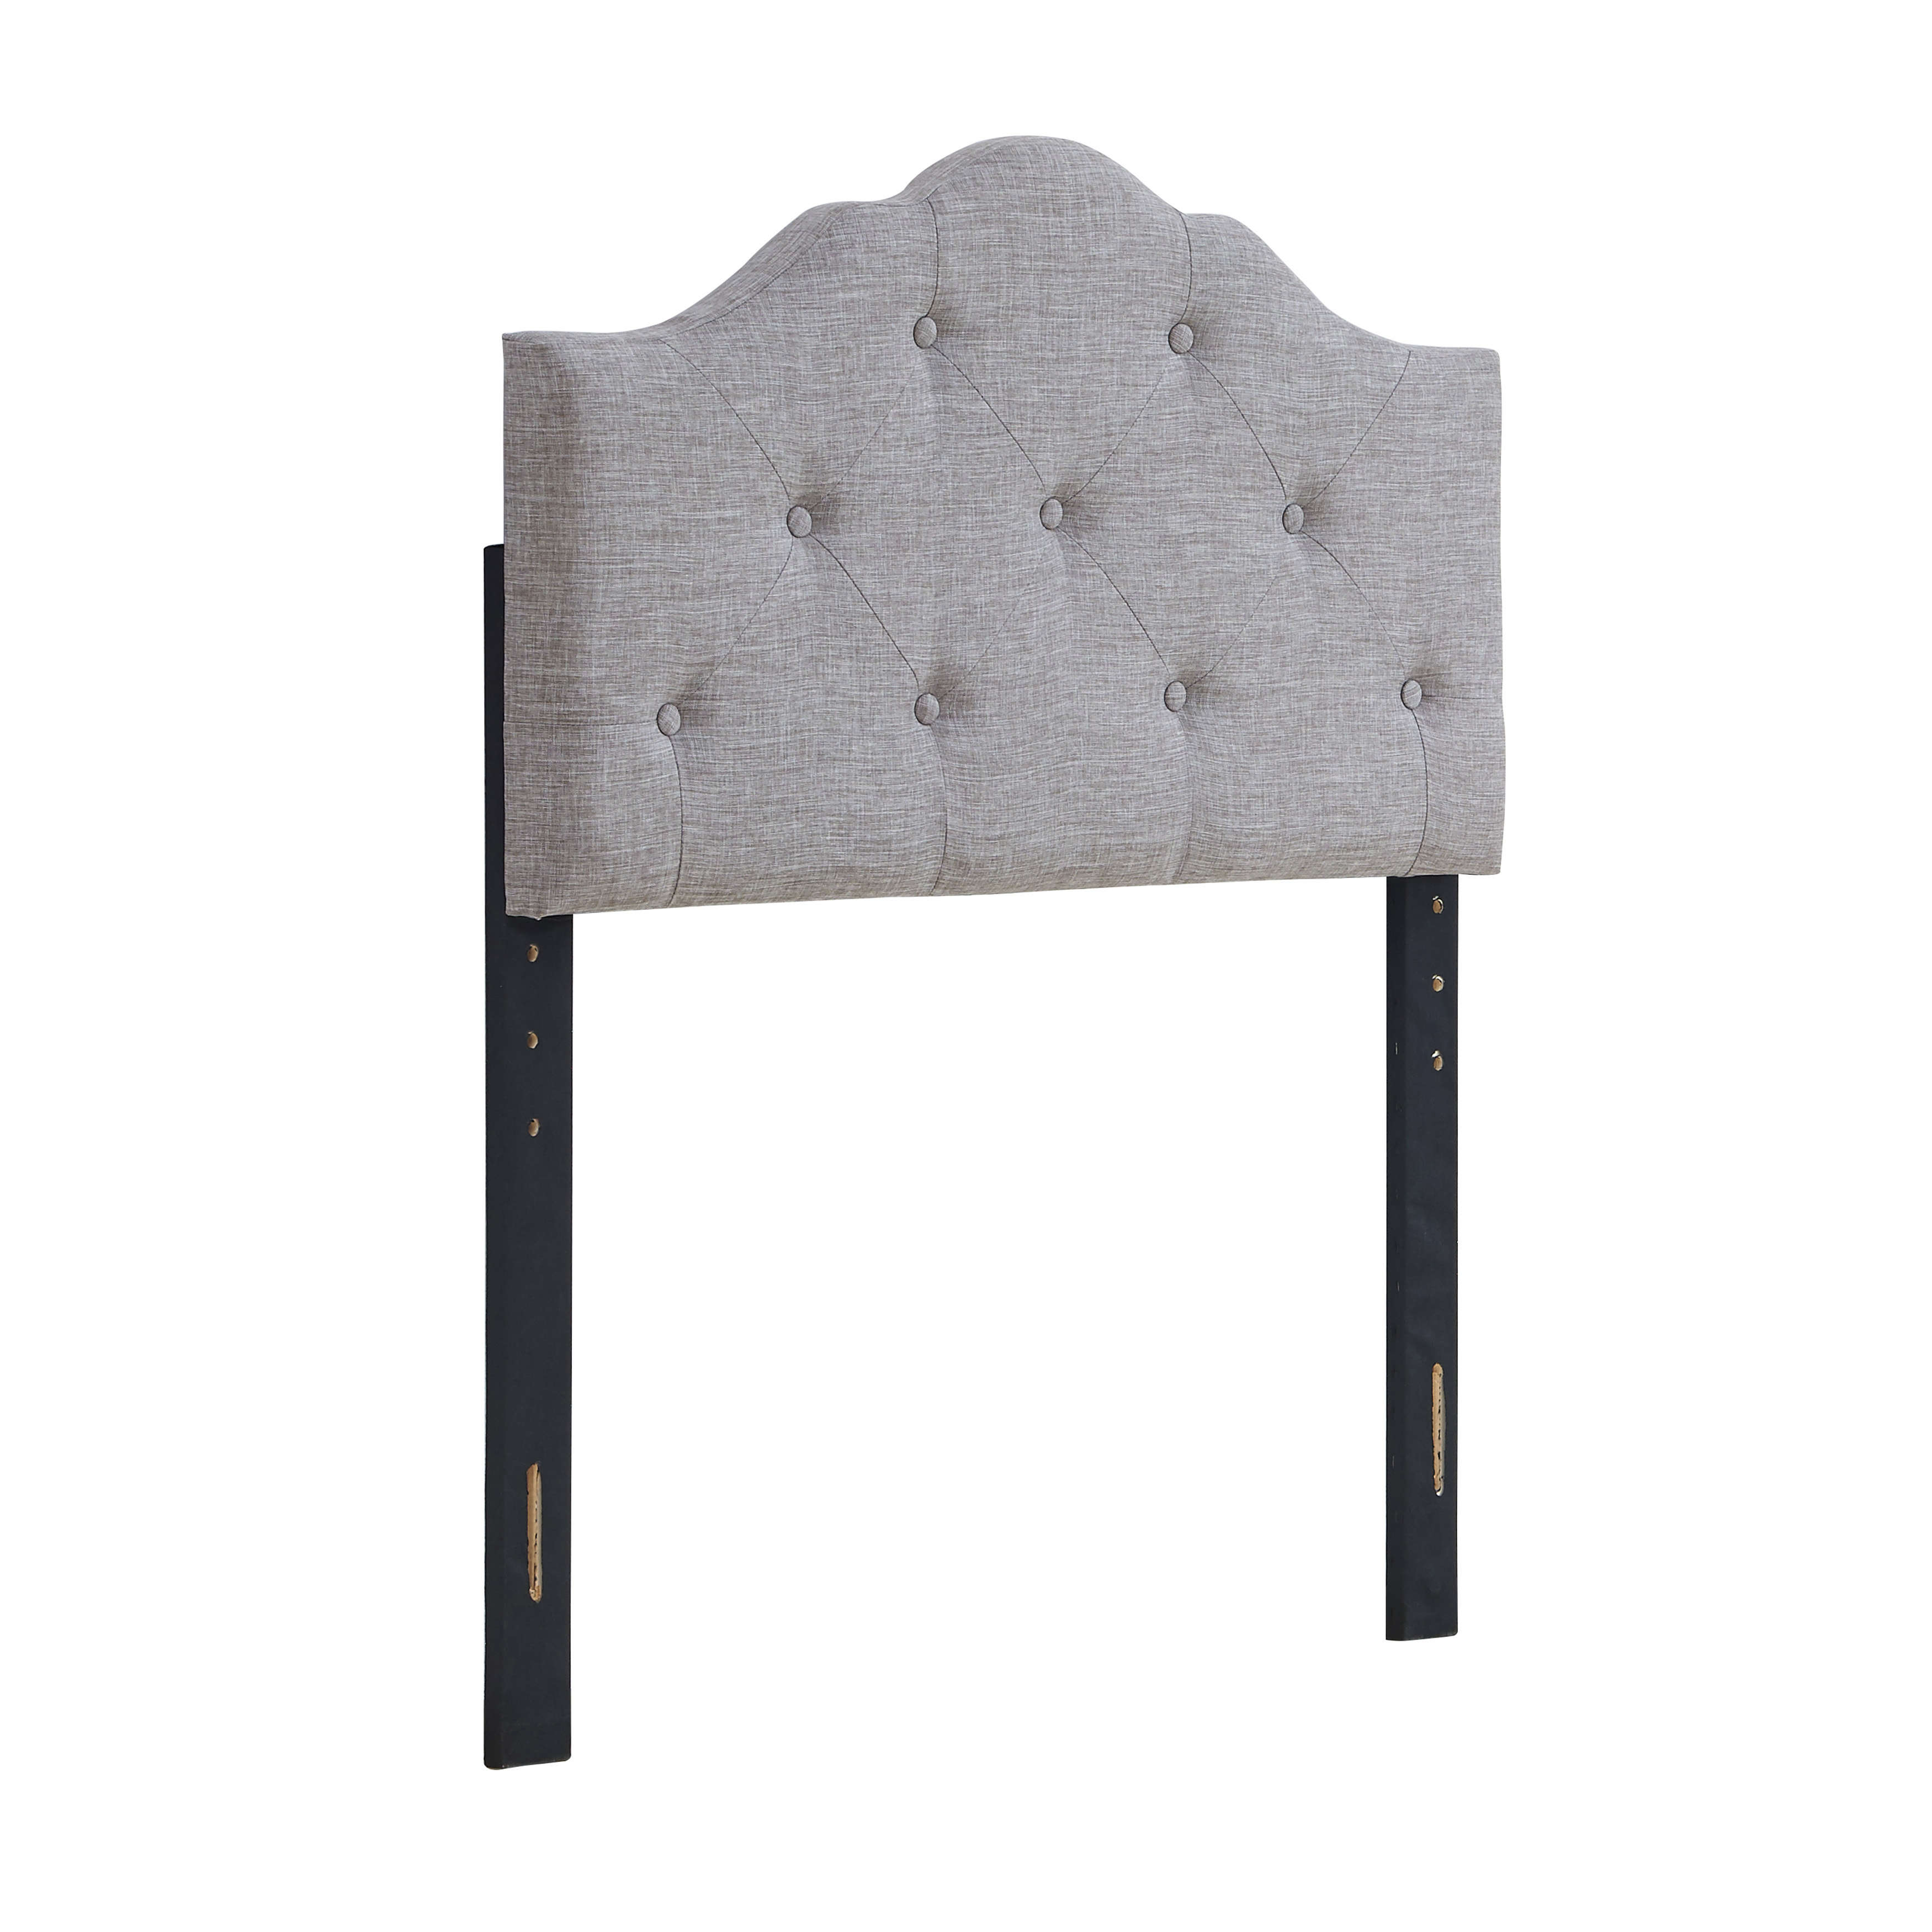 Mainstays Upholstered Tufted Rounded Headboard, Grey, Multiple Sizes by DHI